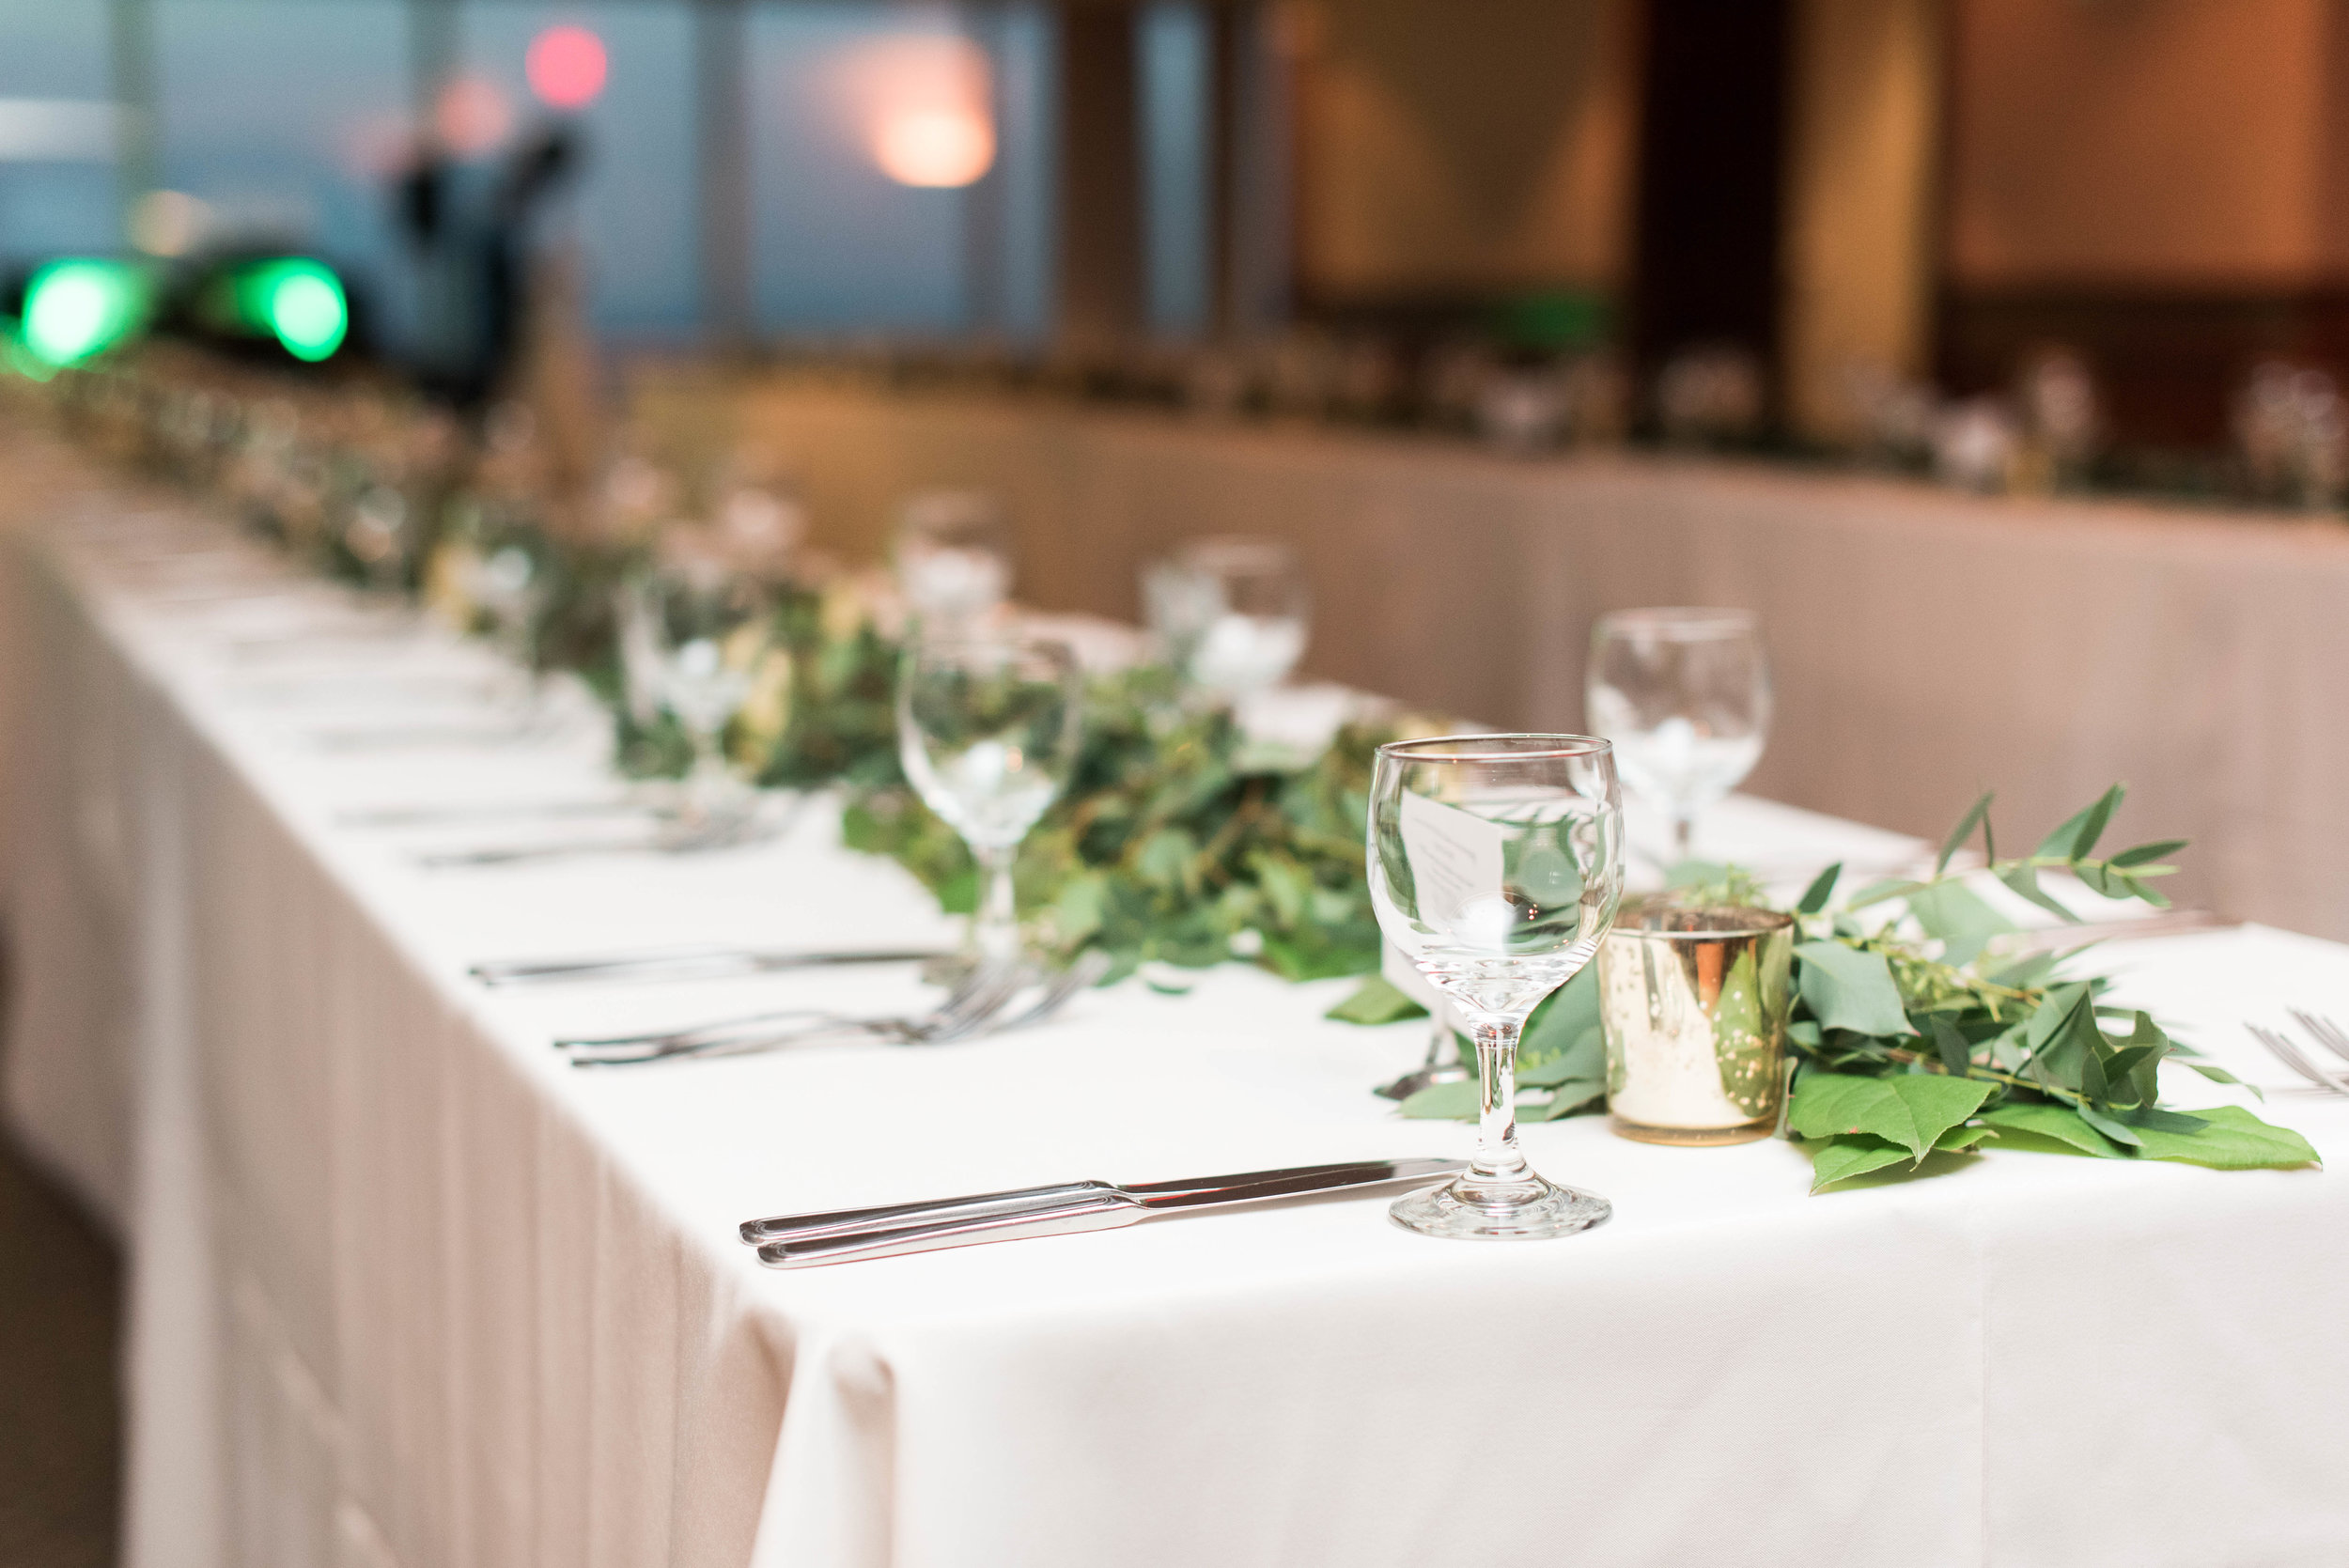 The tables were decorated down the center with garland and mercury glass votives.